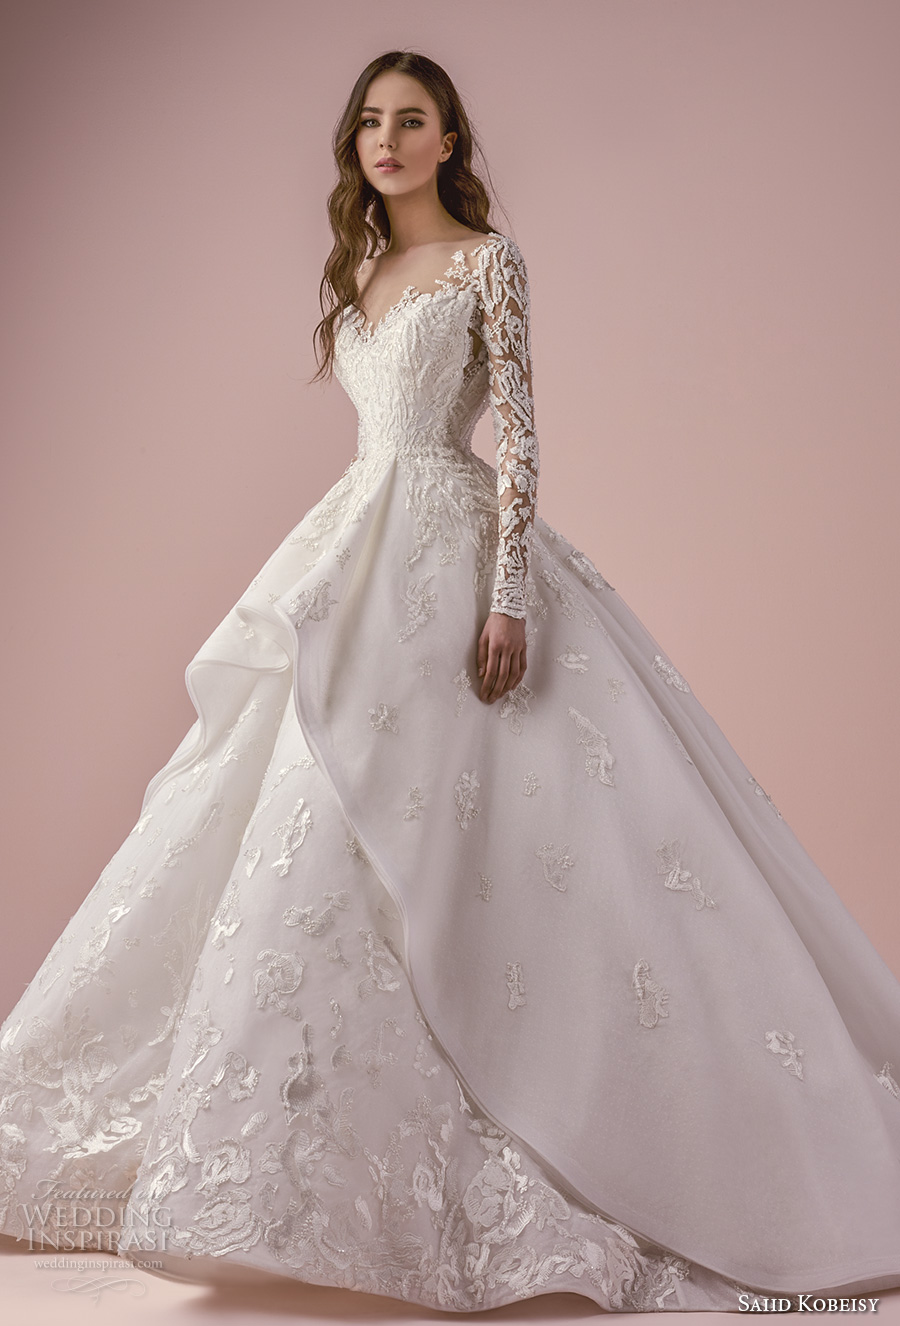 saiid kobeisy 2018 bridal long sleeves v neck heavily embellished bodice romantic princess layered skirt ball gown wedding dress chapel train (3265) mv